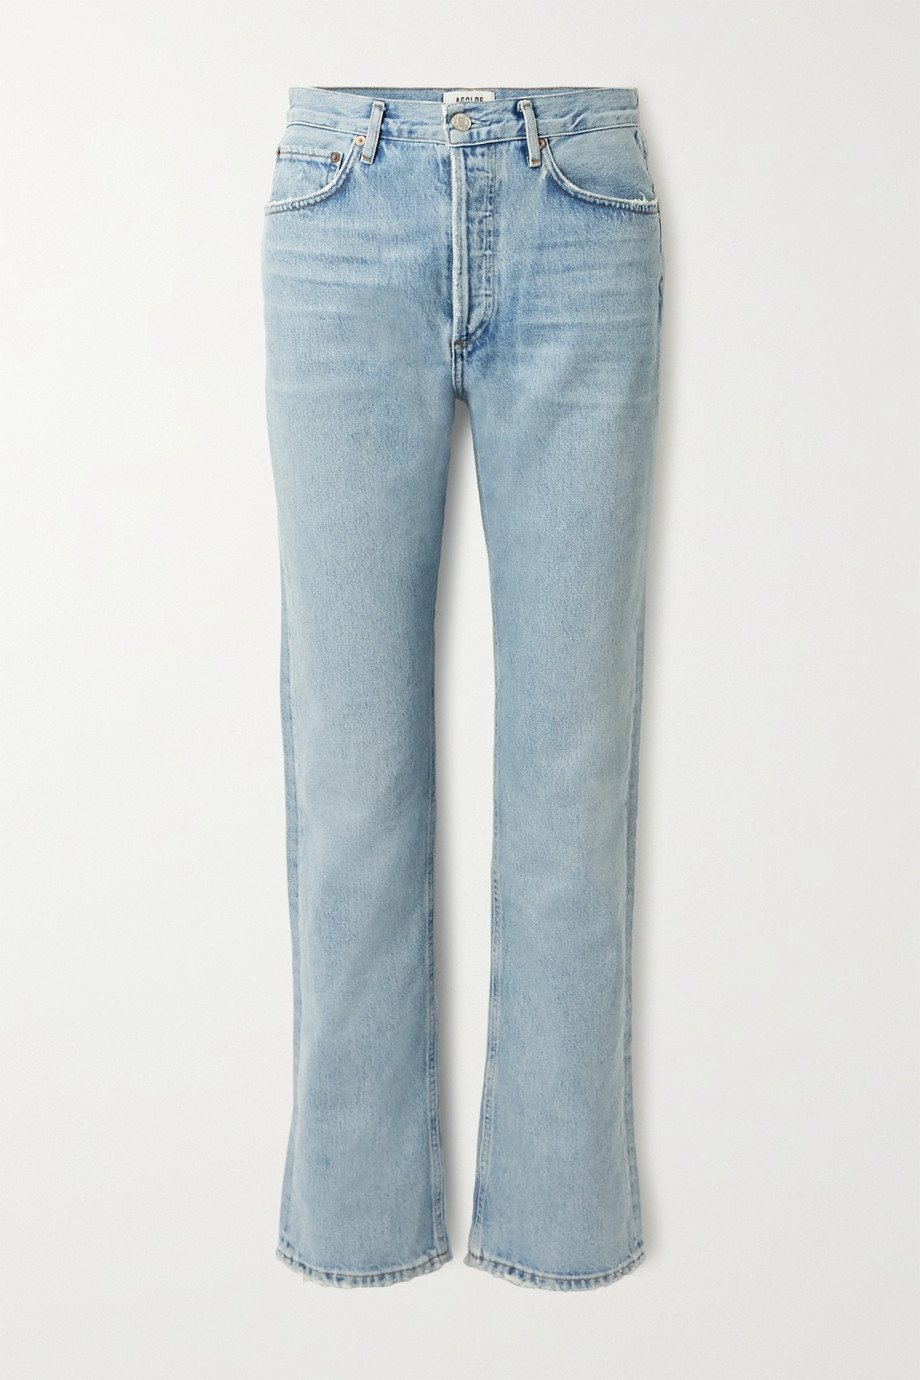 AGOLDE + NET SUSTAIN Lana distressed organic low-rise straight-leg jeans